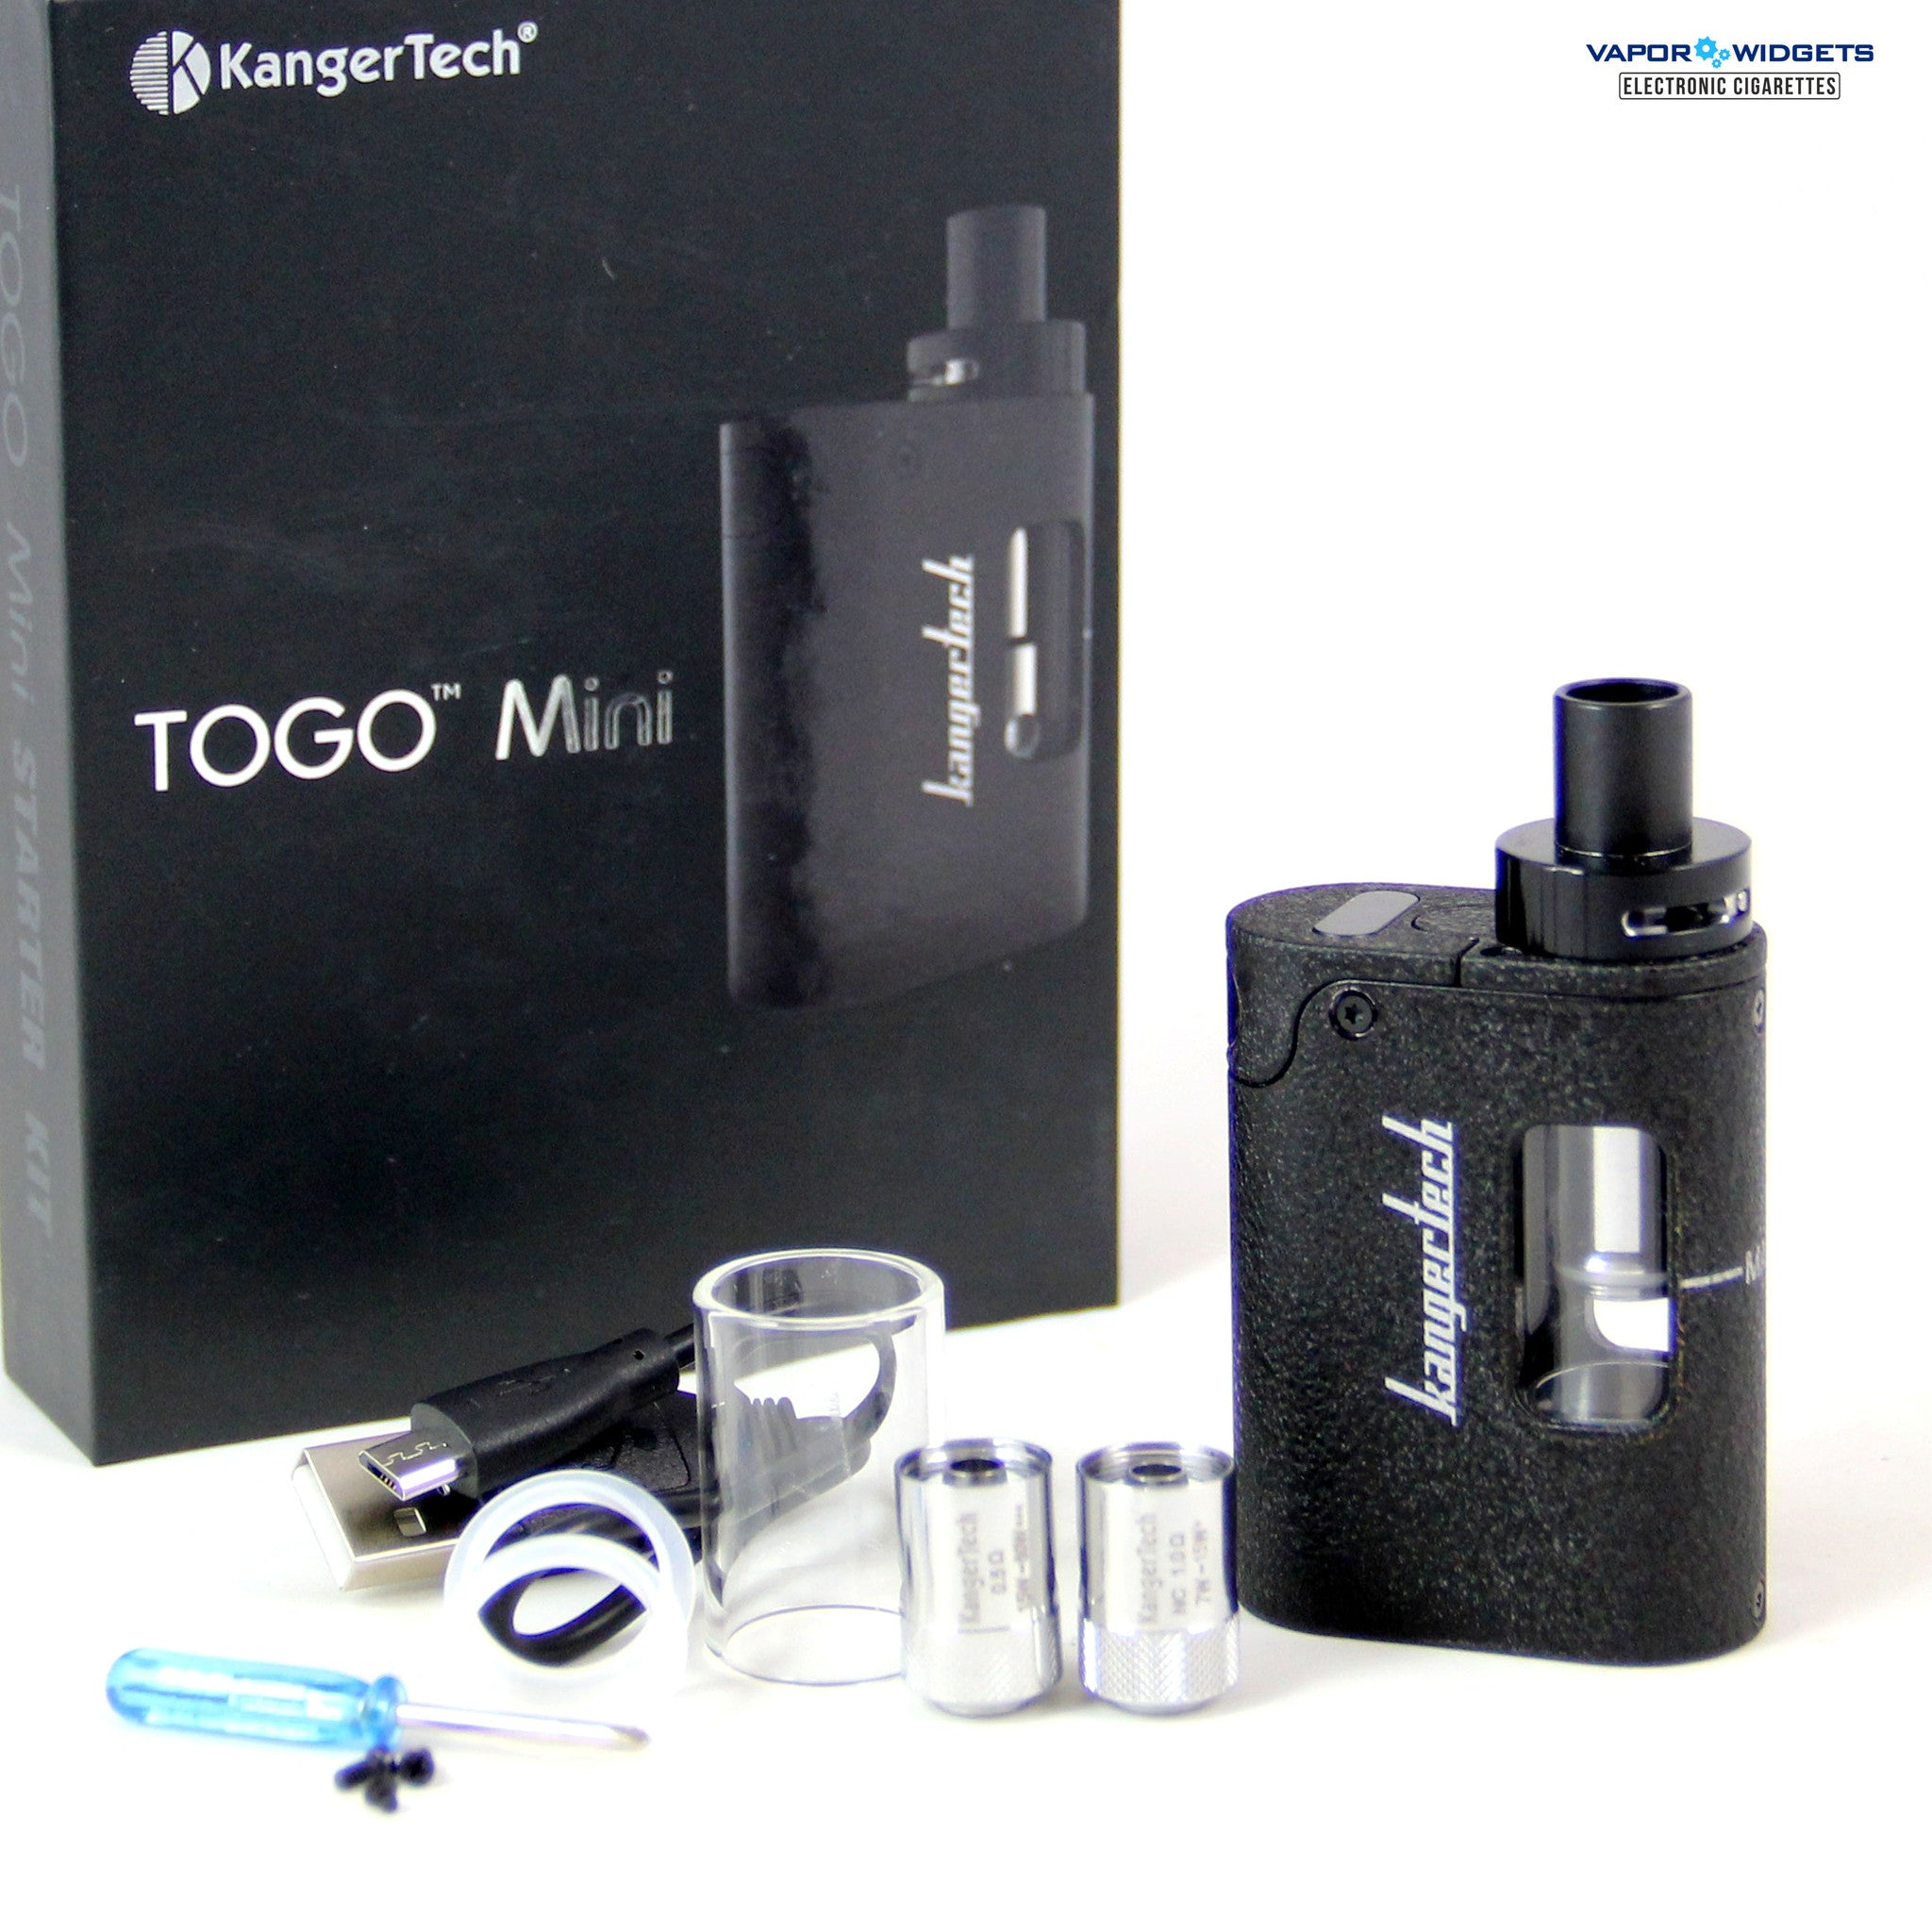 Kanger TOGO Mini starter kit Black | Vapor Widgets